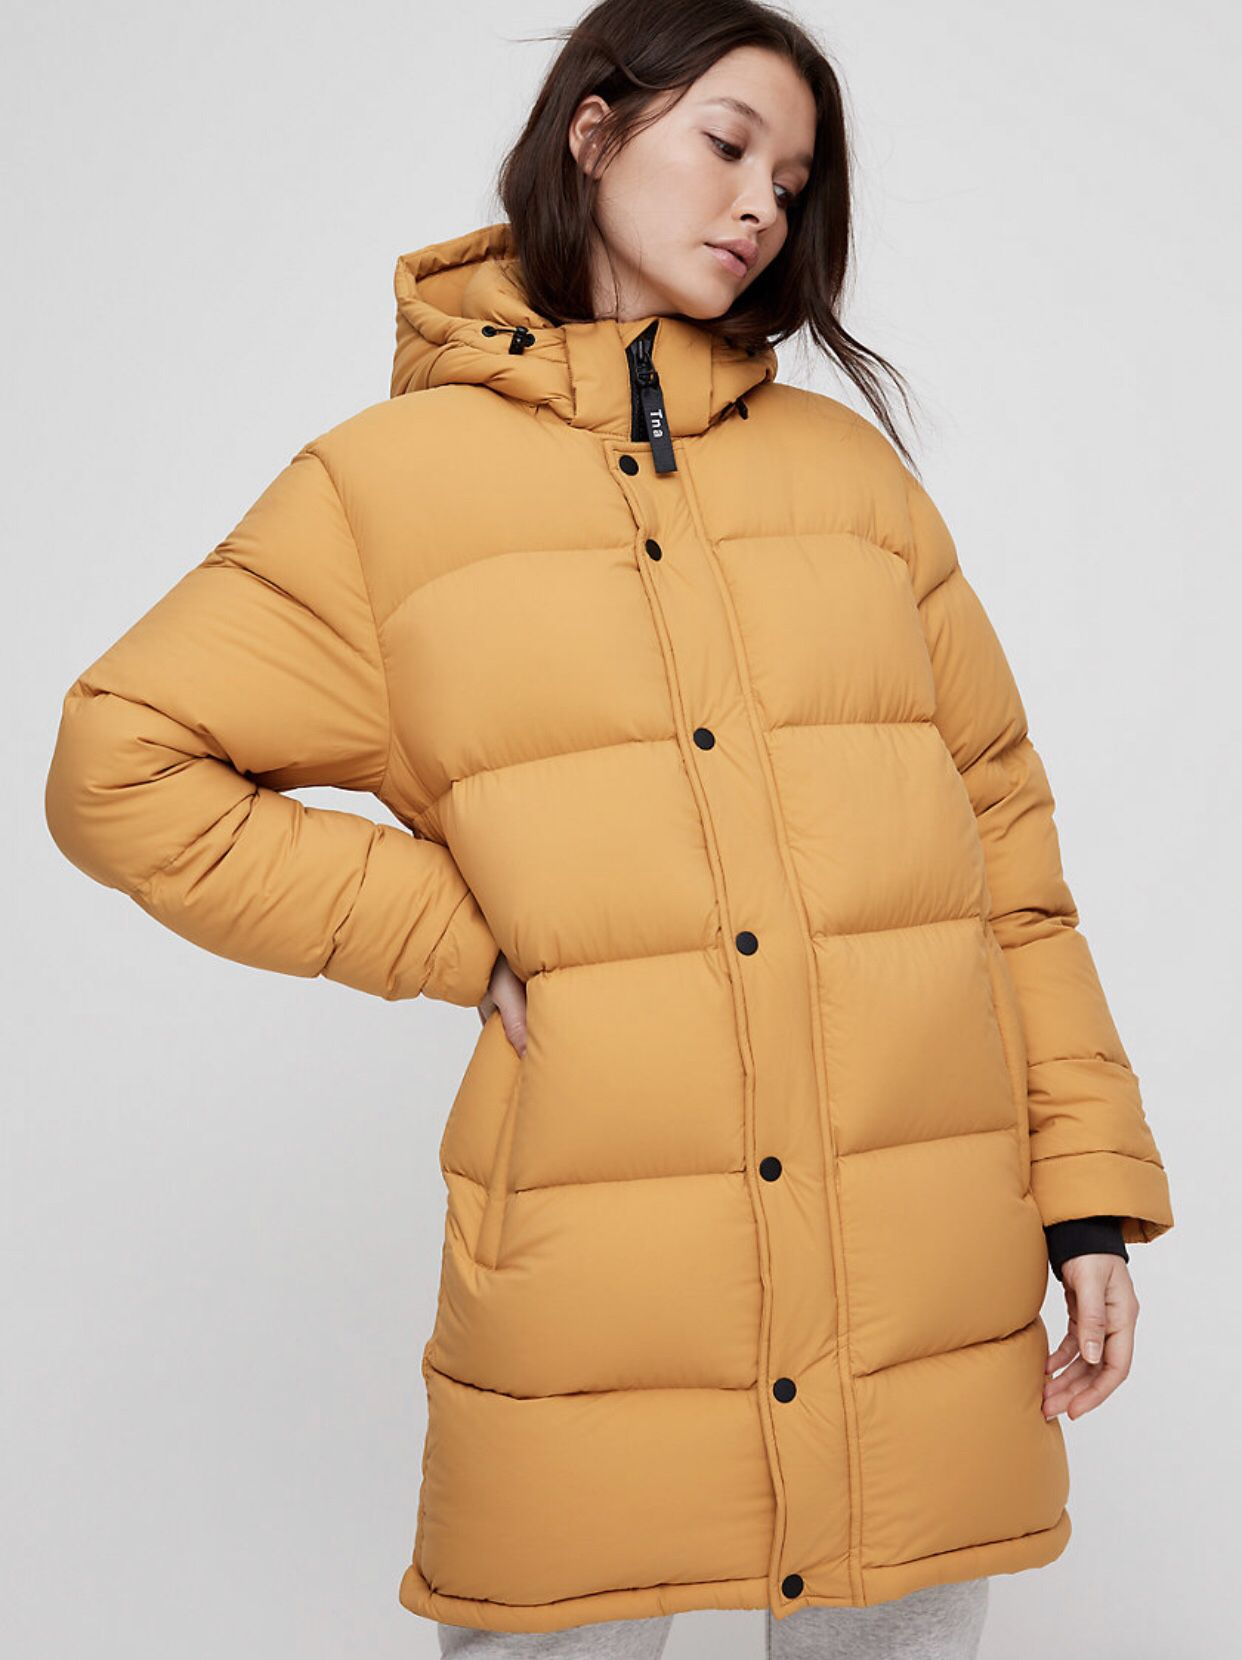 c67ffa729 The super puff mid in 2019 | Sarah's Style | Winter jackets, Puffer ...